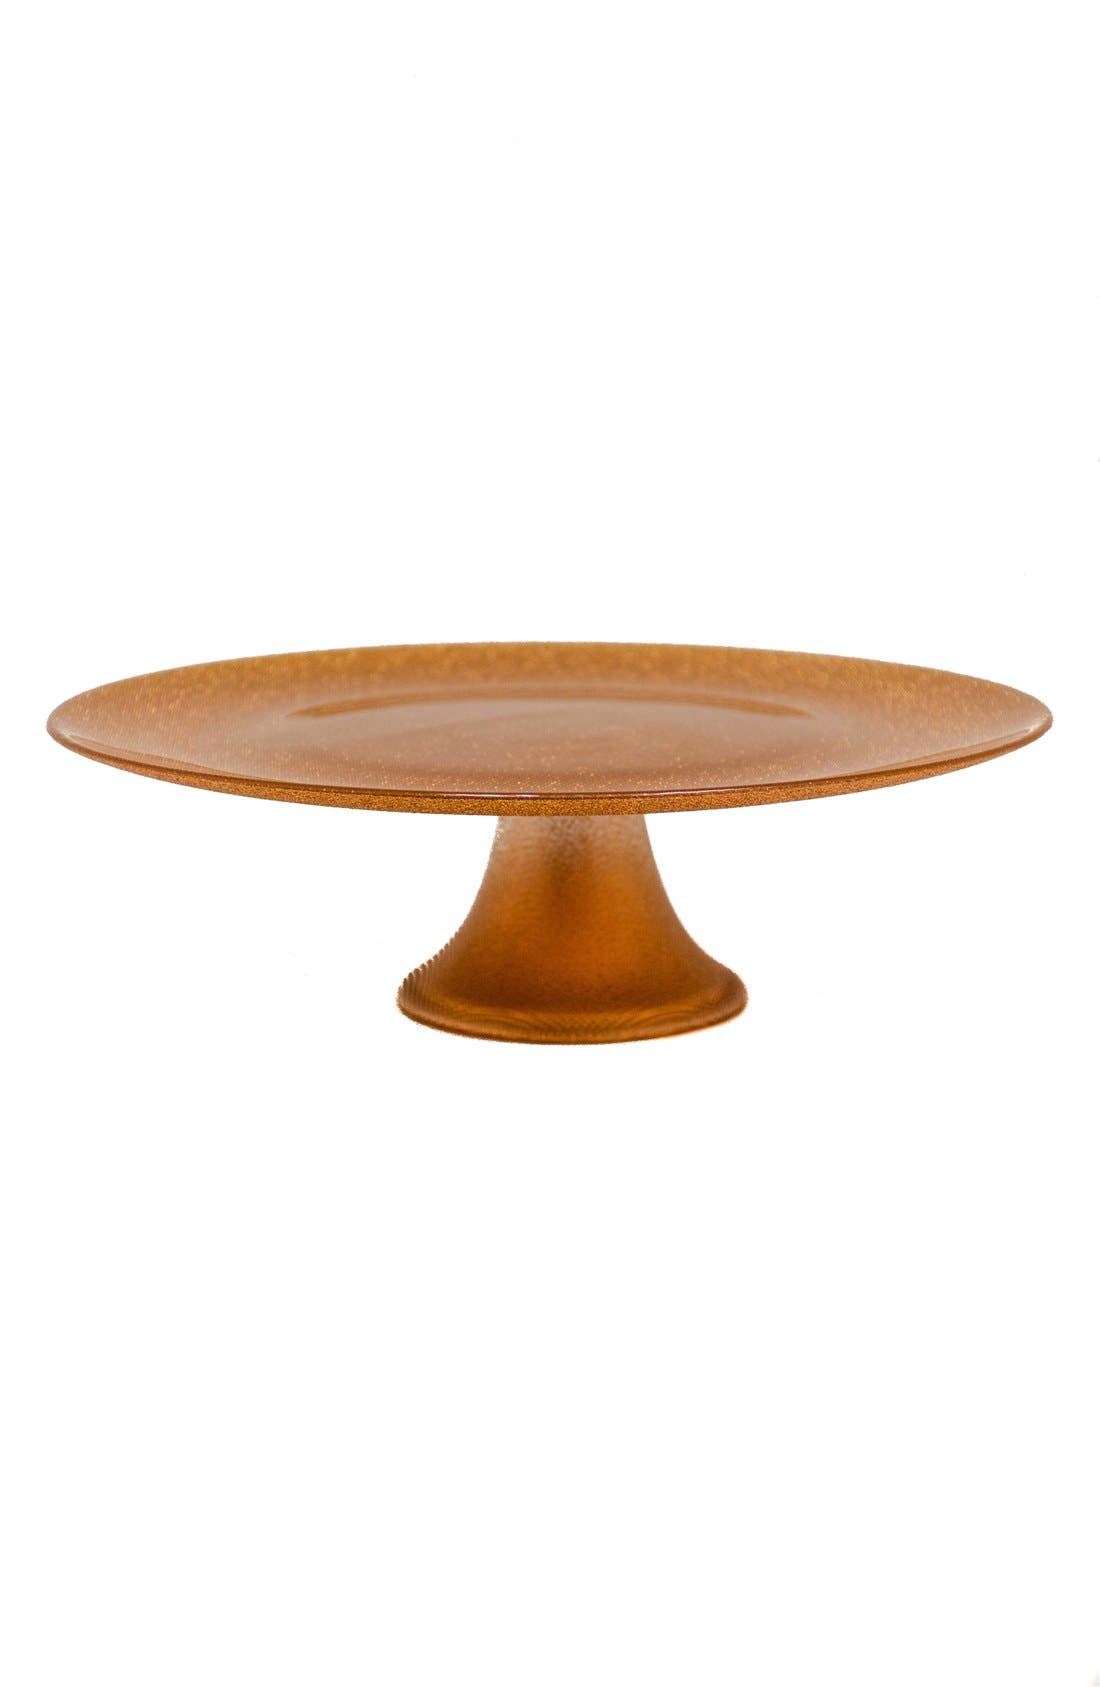 Footed Cake Stand,                             Main thumbnail 1, color,                             Copper